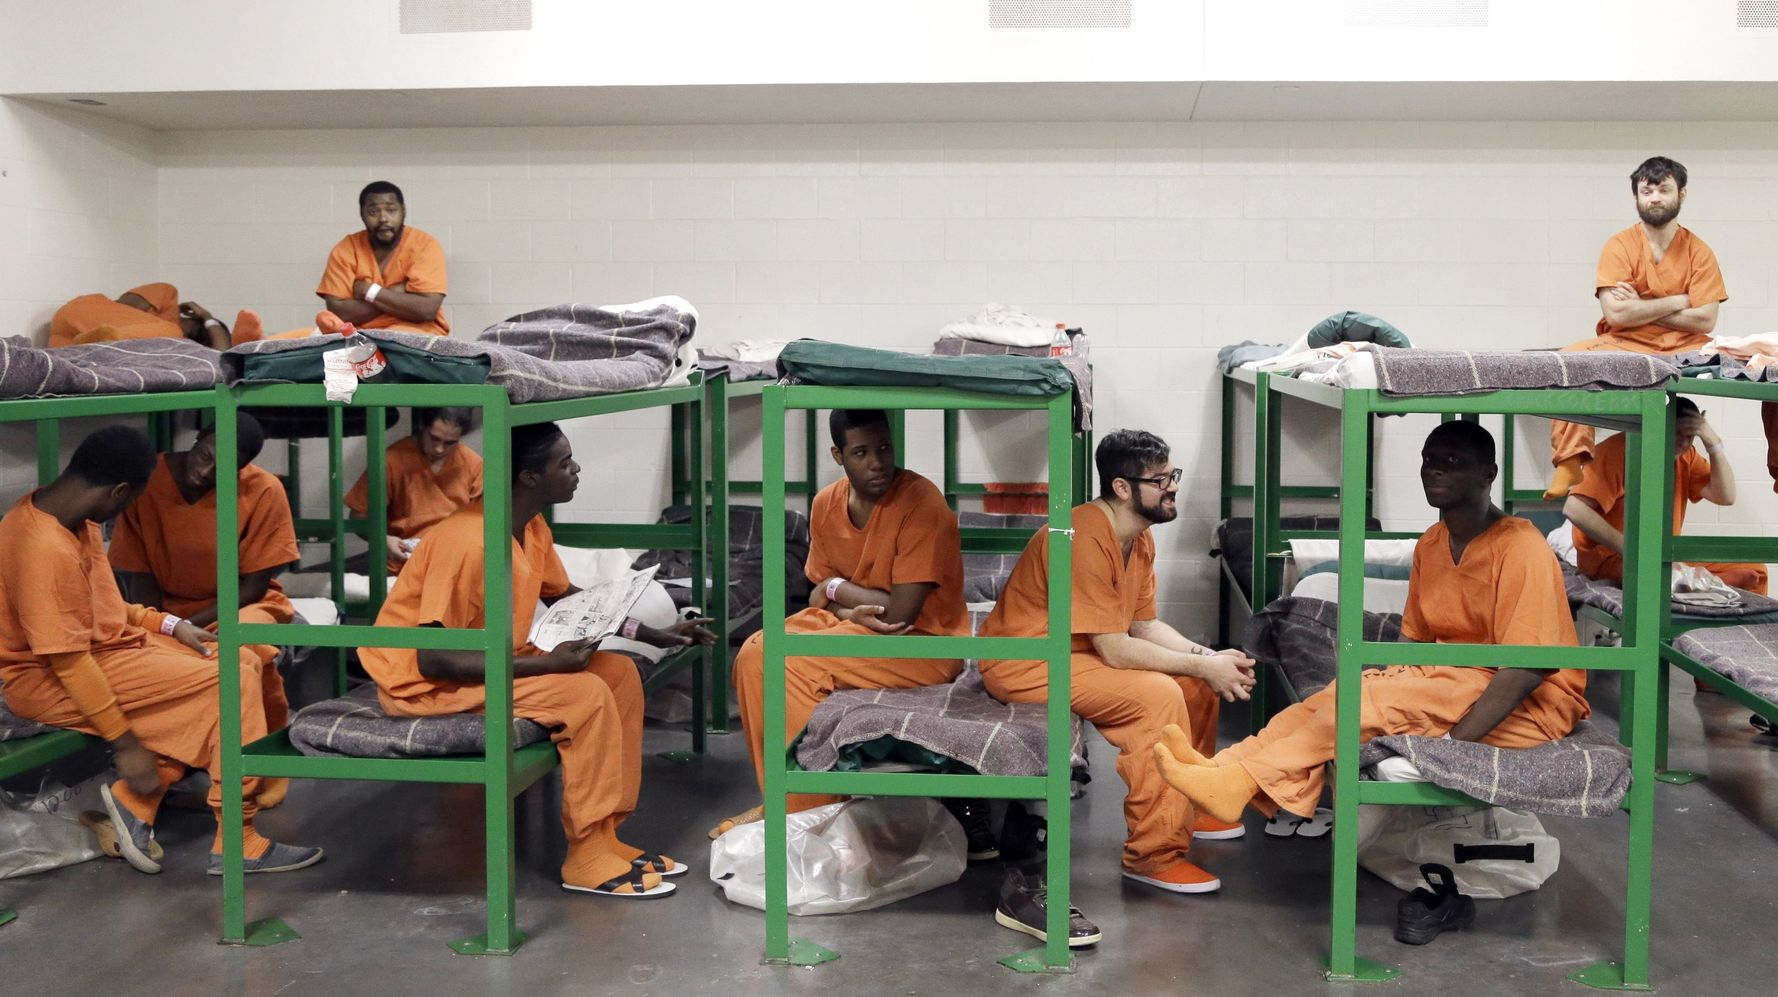 Texas' Largest Jail Hasn't Learned Much From Sandra Bland's